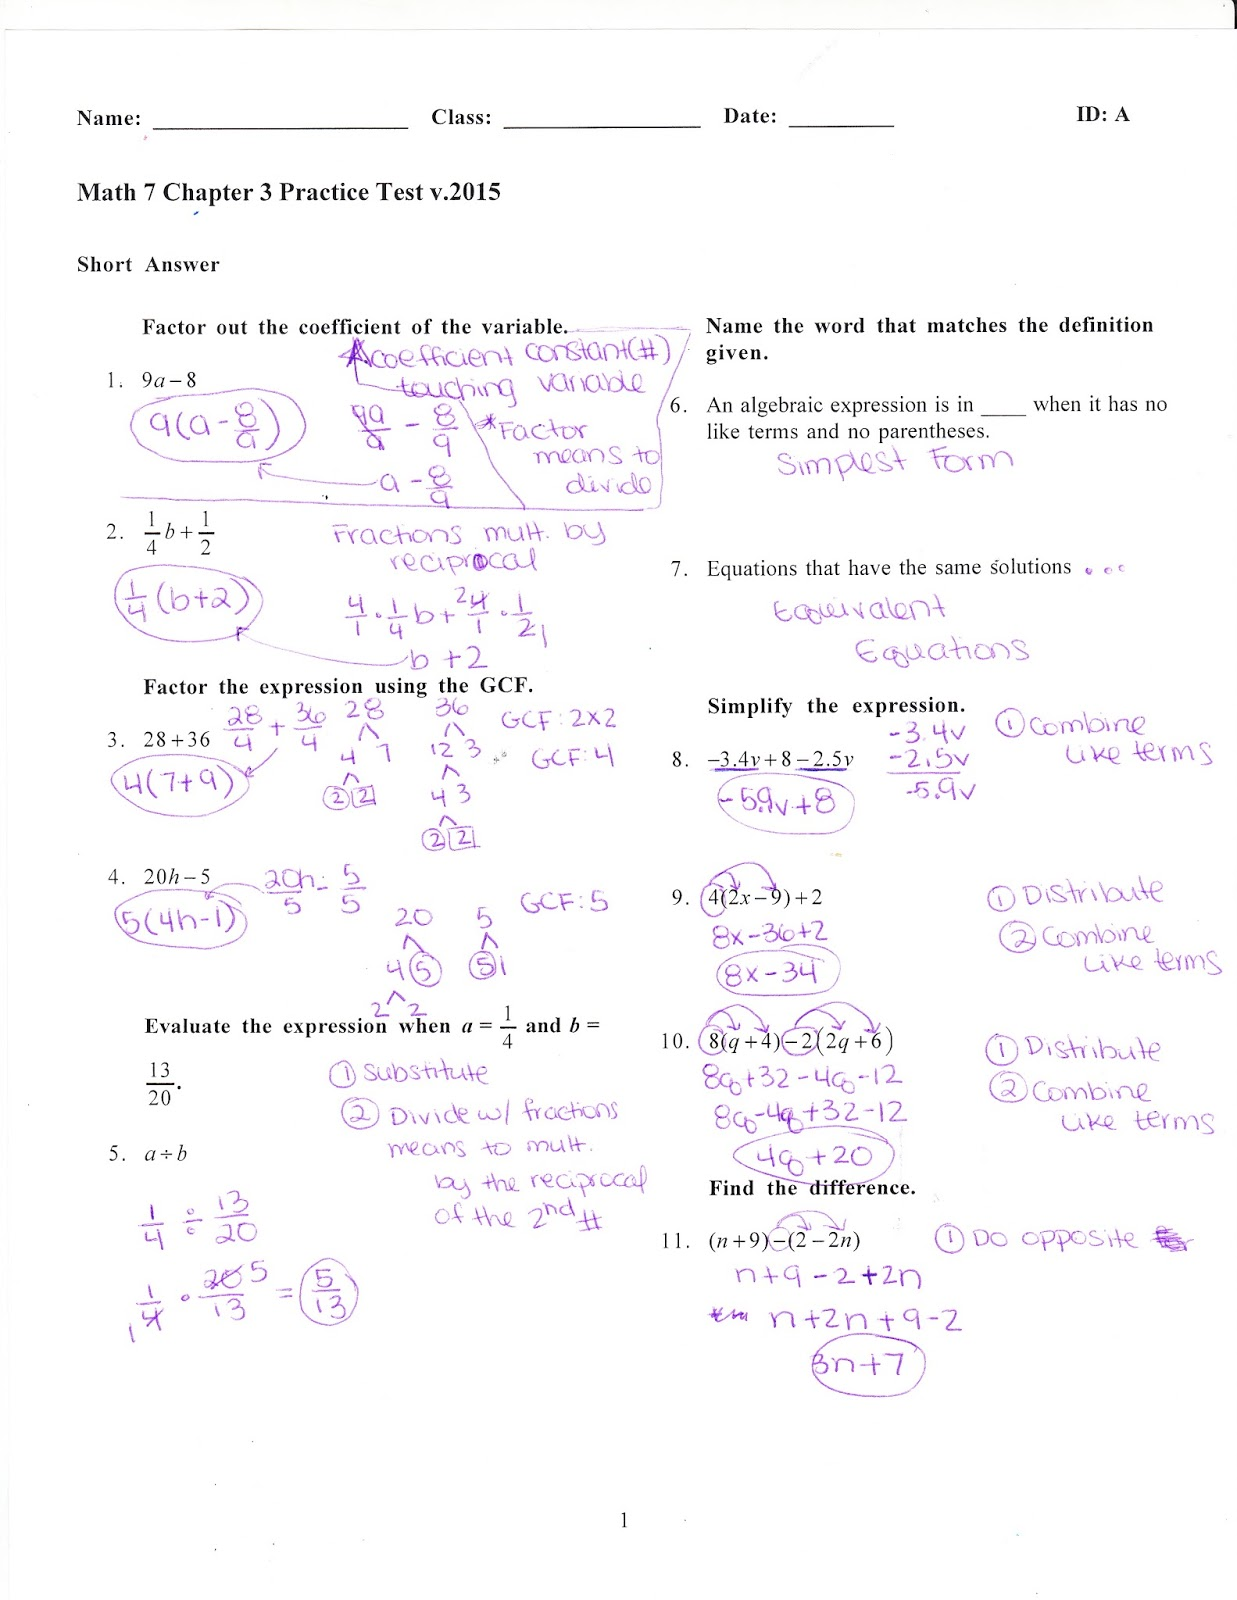 Ms Jean S Classroom Blog Math 7 Chapter 3 Practice Test Answers